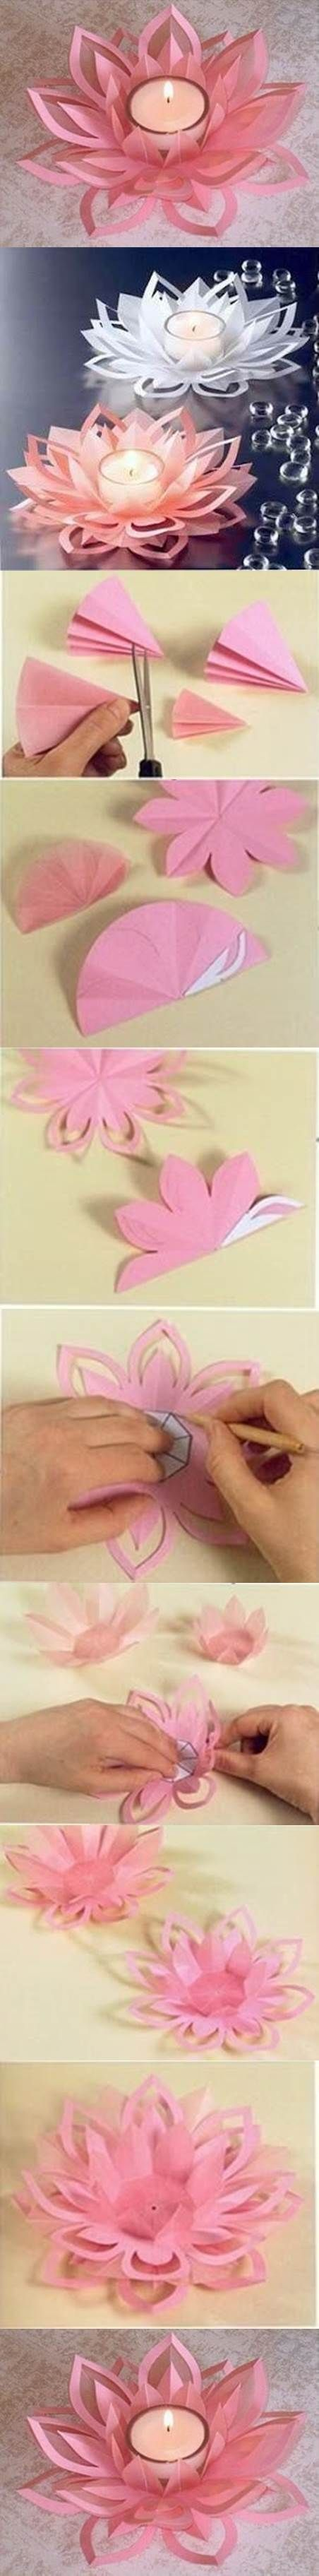 DIY Paper Lotus Candlestick / http://www.himisspuff.com/diy-wedding-centerpieces-on-a-budget/22/